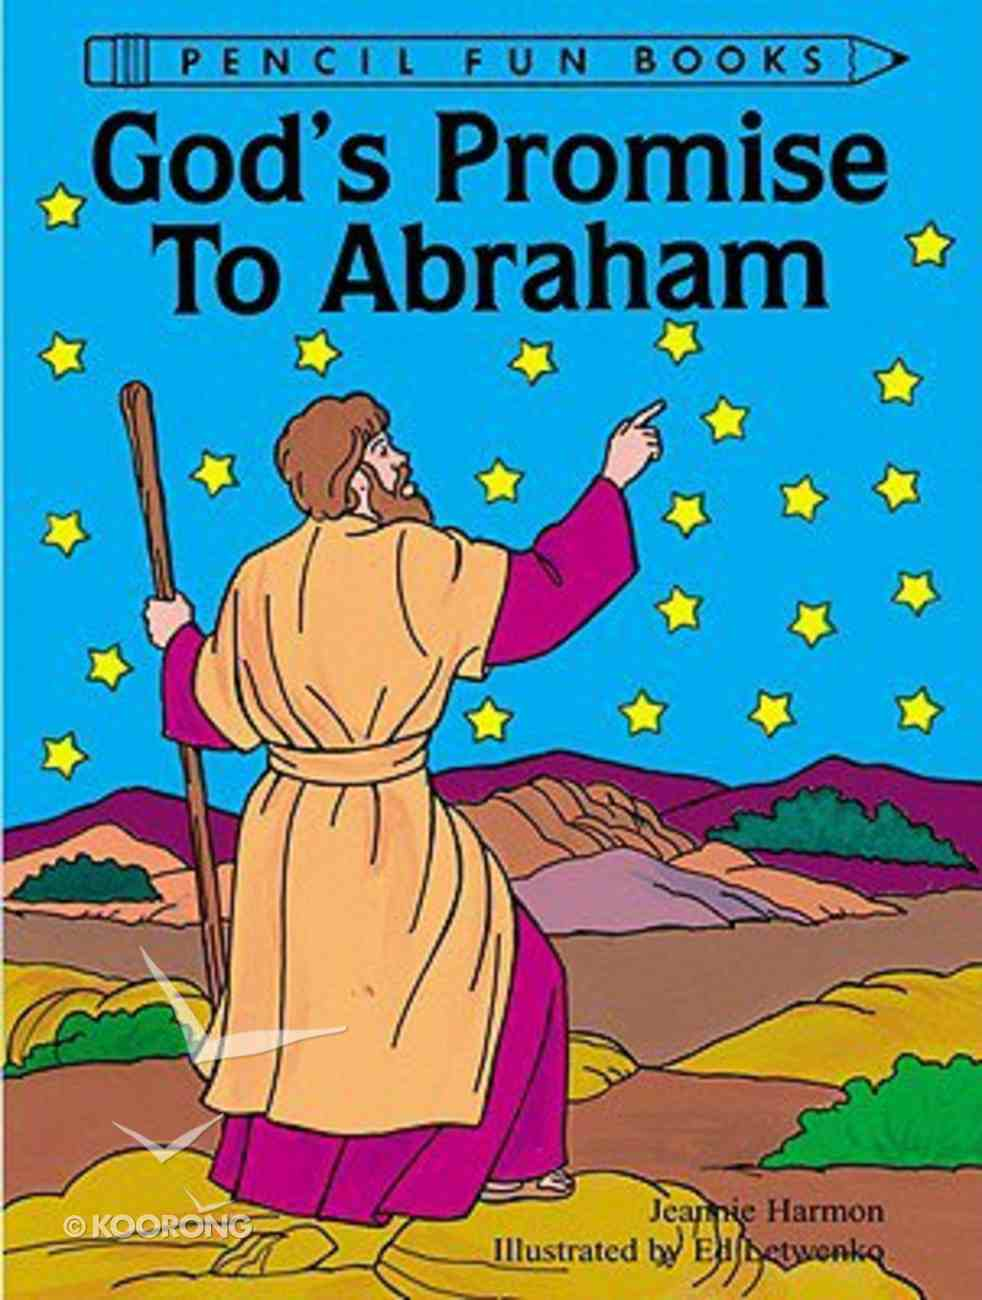 God's Promise to Abraham (Pencil Fun Books Series) Paperback